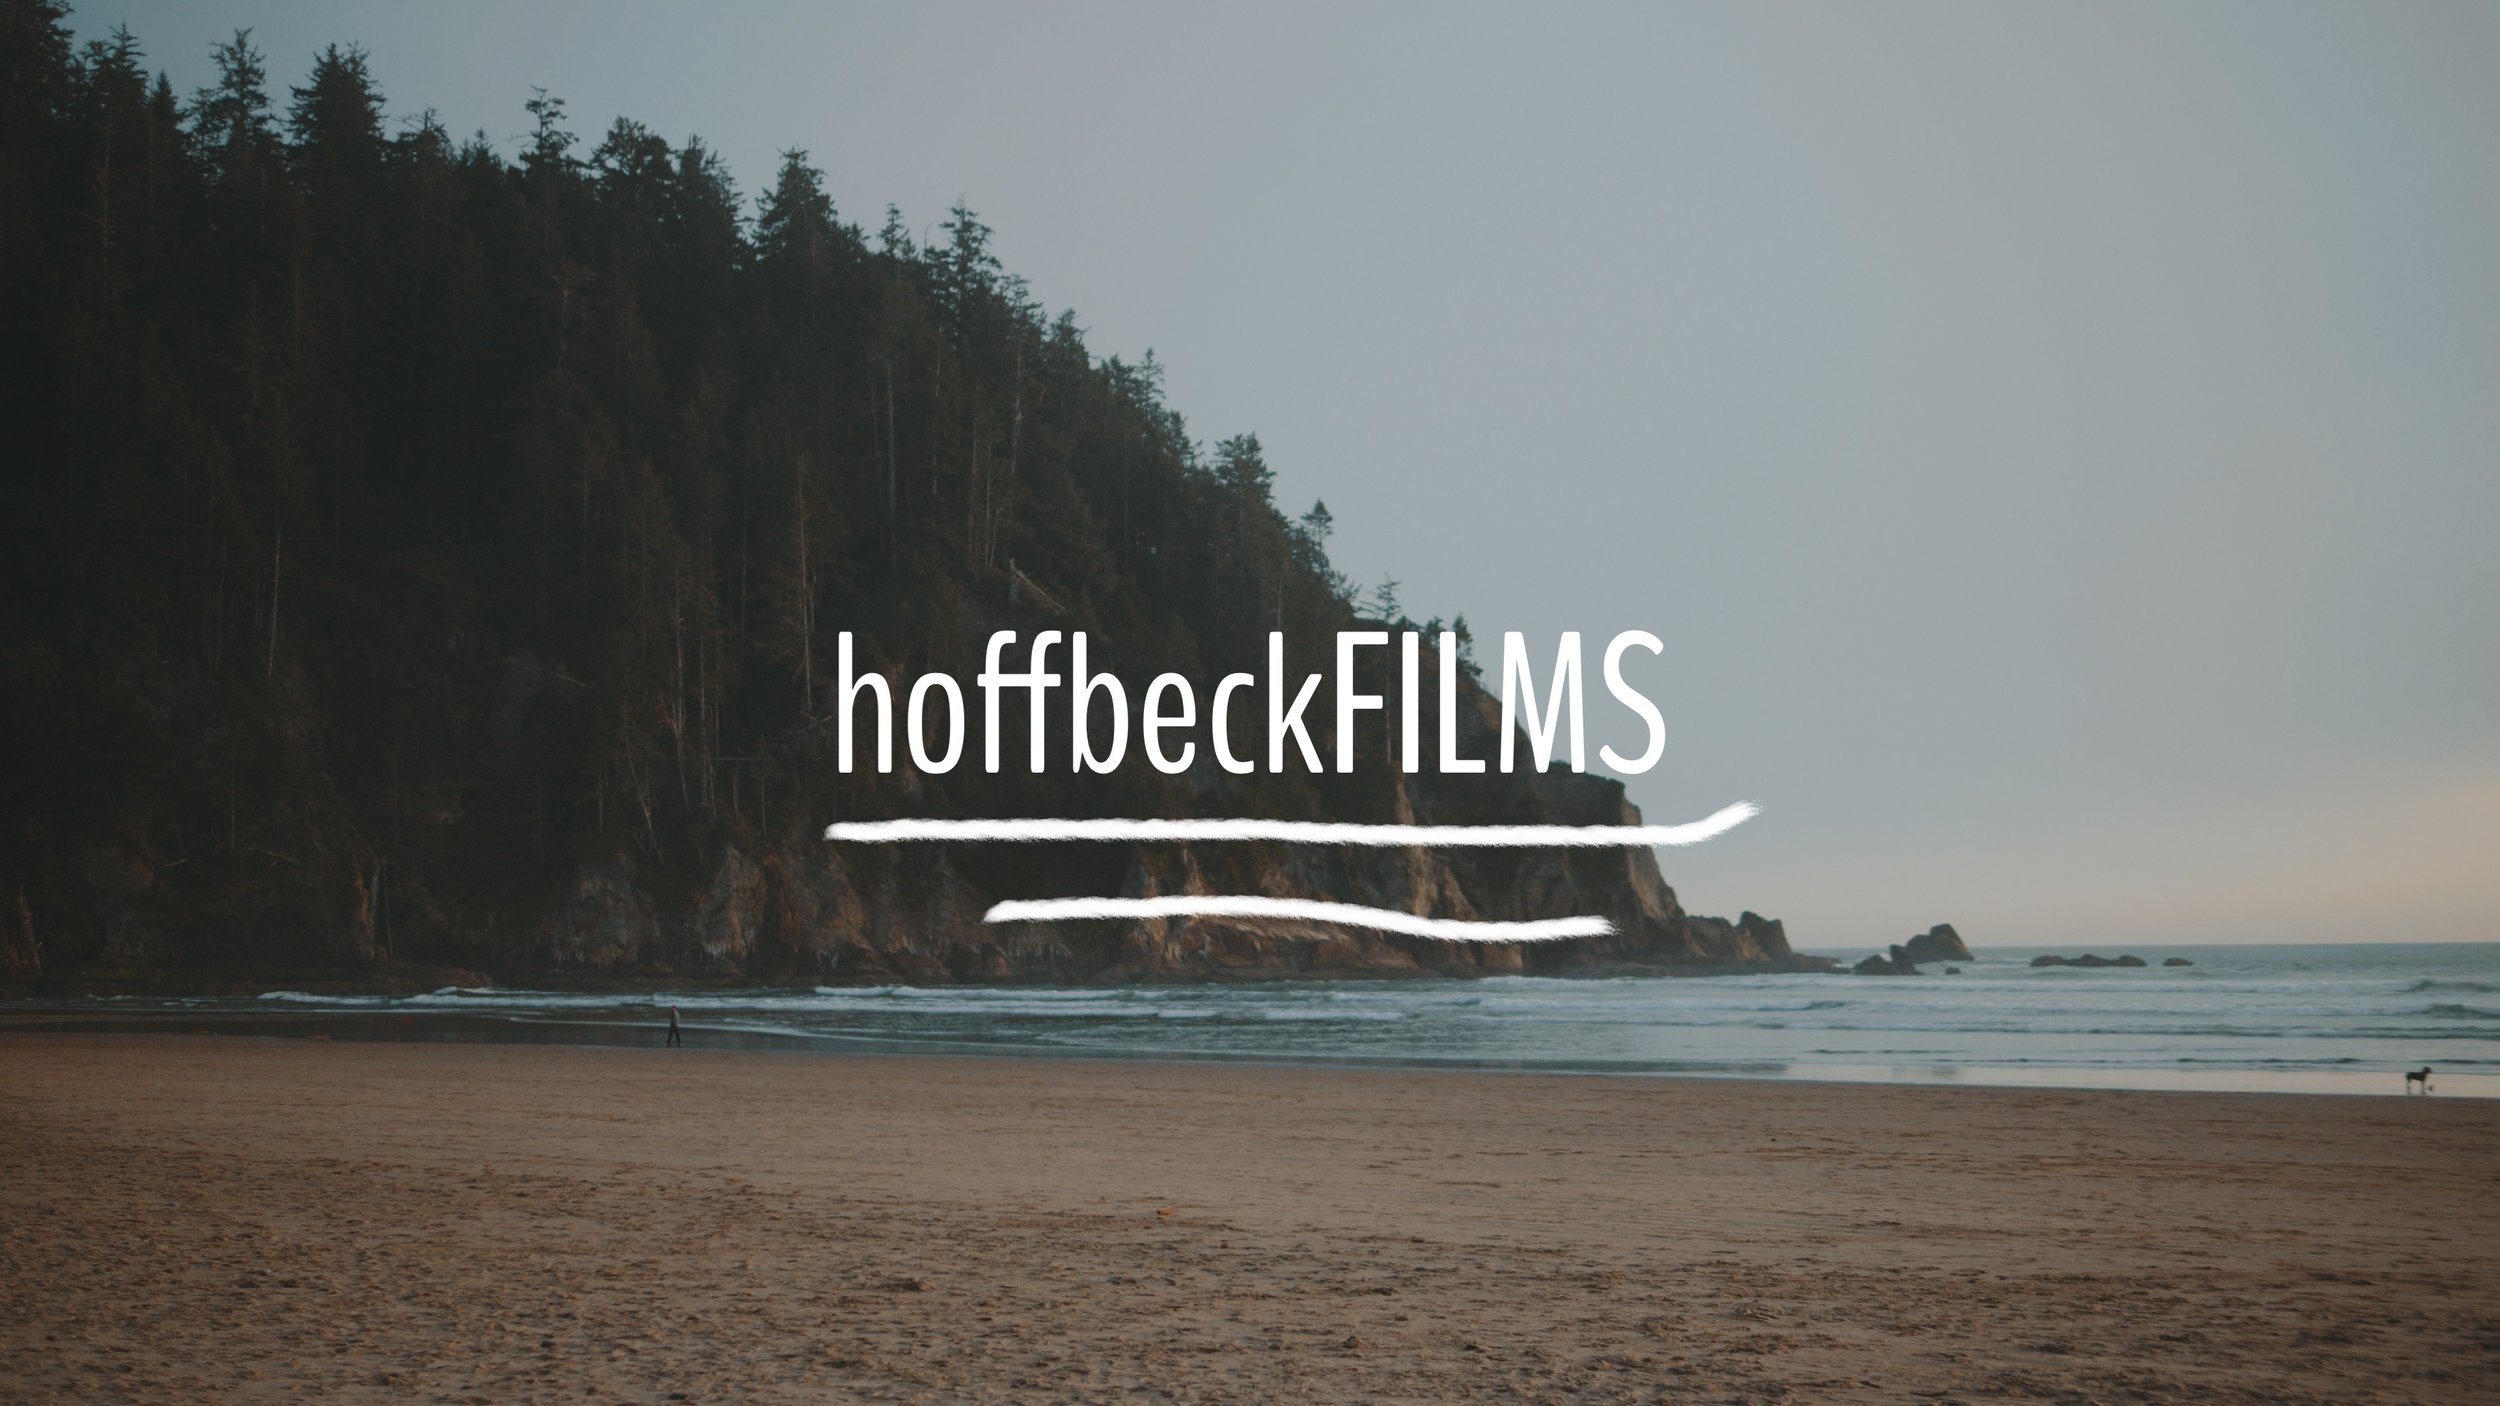 hoffbeckFILMS - The Personalized Experience.Schedule a detailed shoot that is perfectly planned and focused around your company, organization, or you.Films and photos that bring your story to light, inspire your world and increase your impact.Get started by Scheduling a personal meeting!